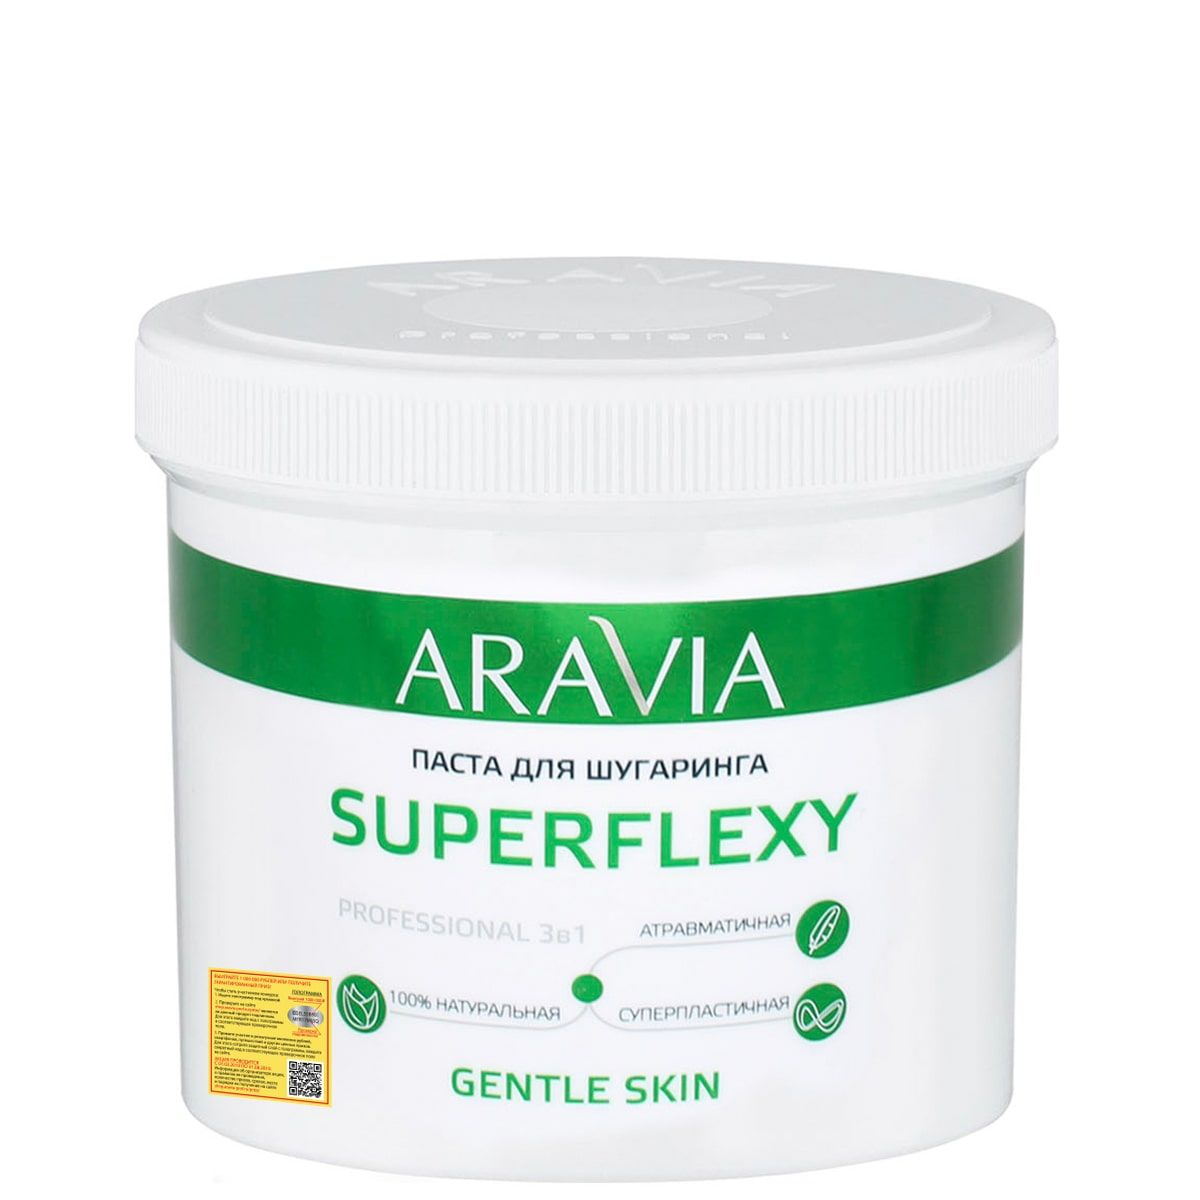 ARAVIA Professional, Сахарная паста Superflexy Gentle Skin, 750 г